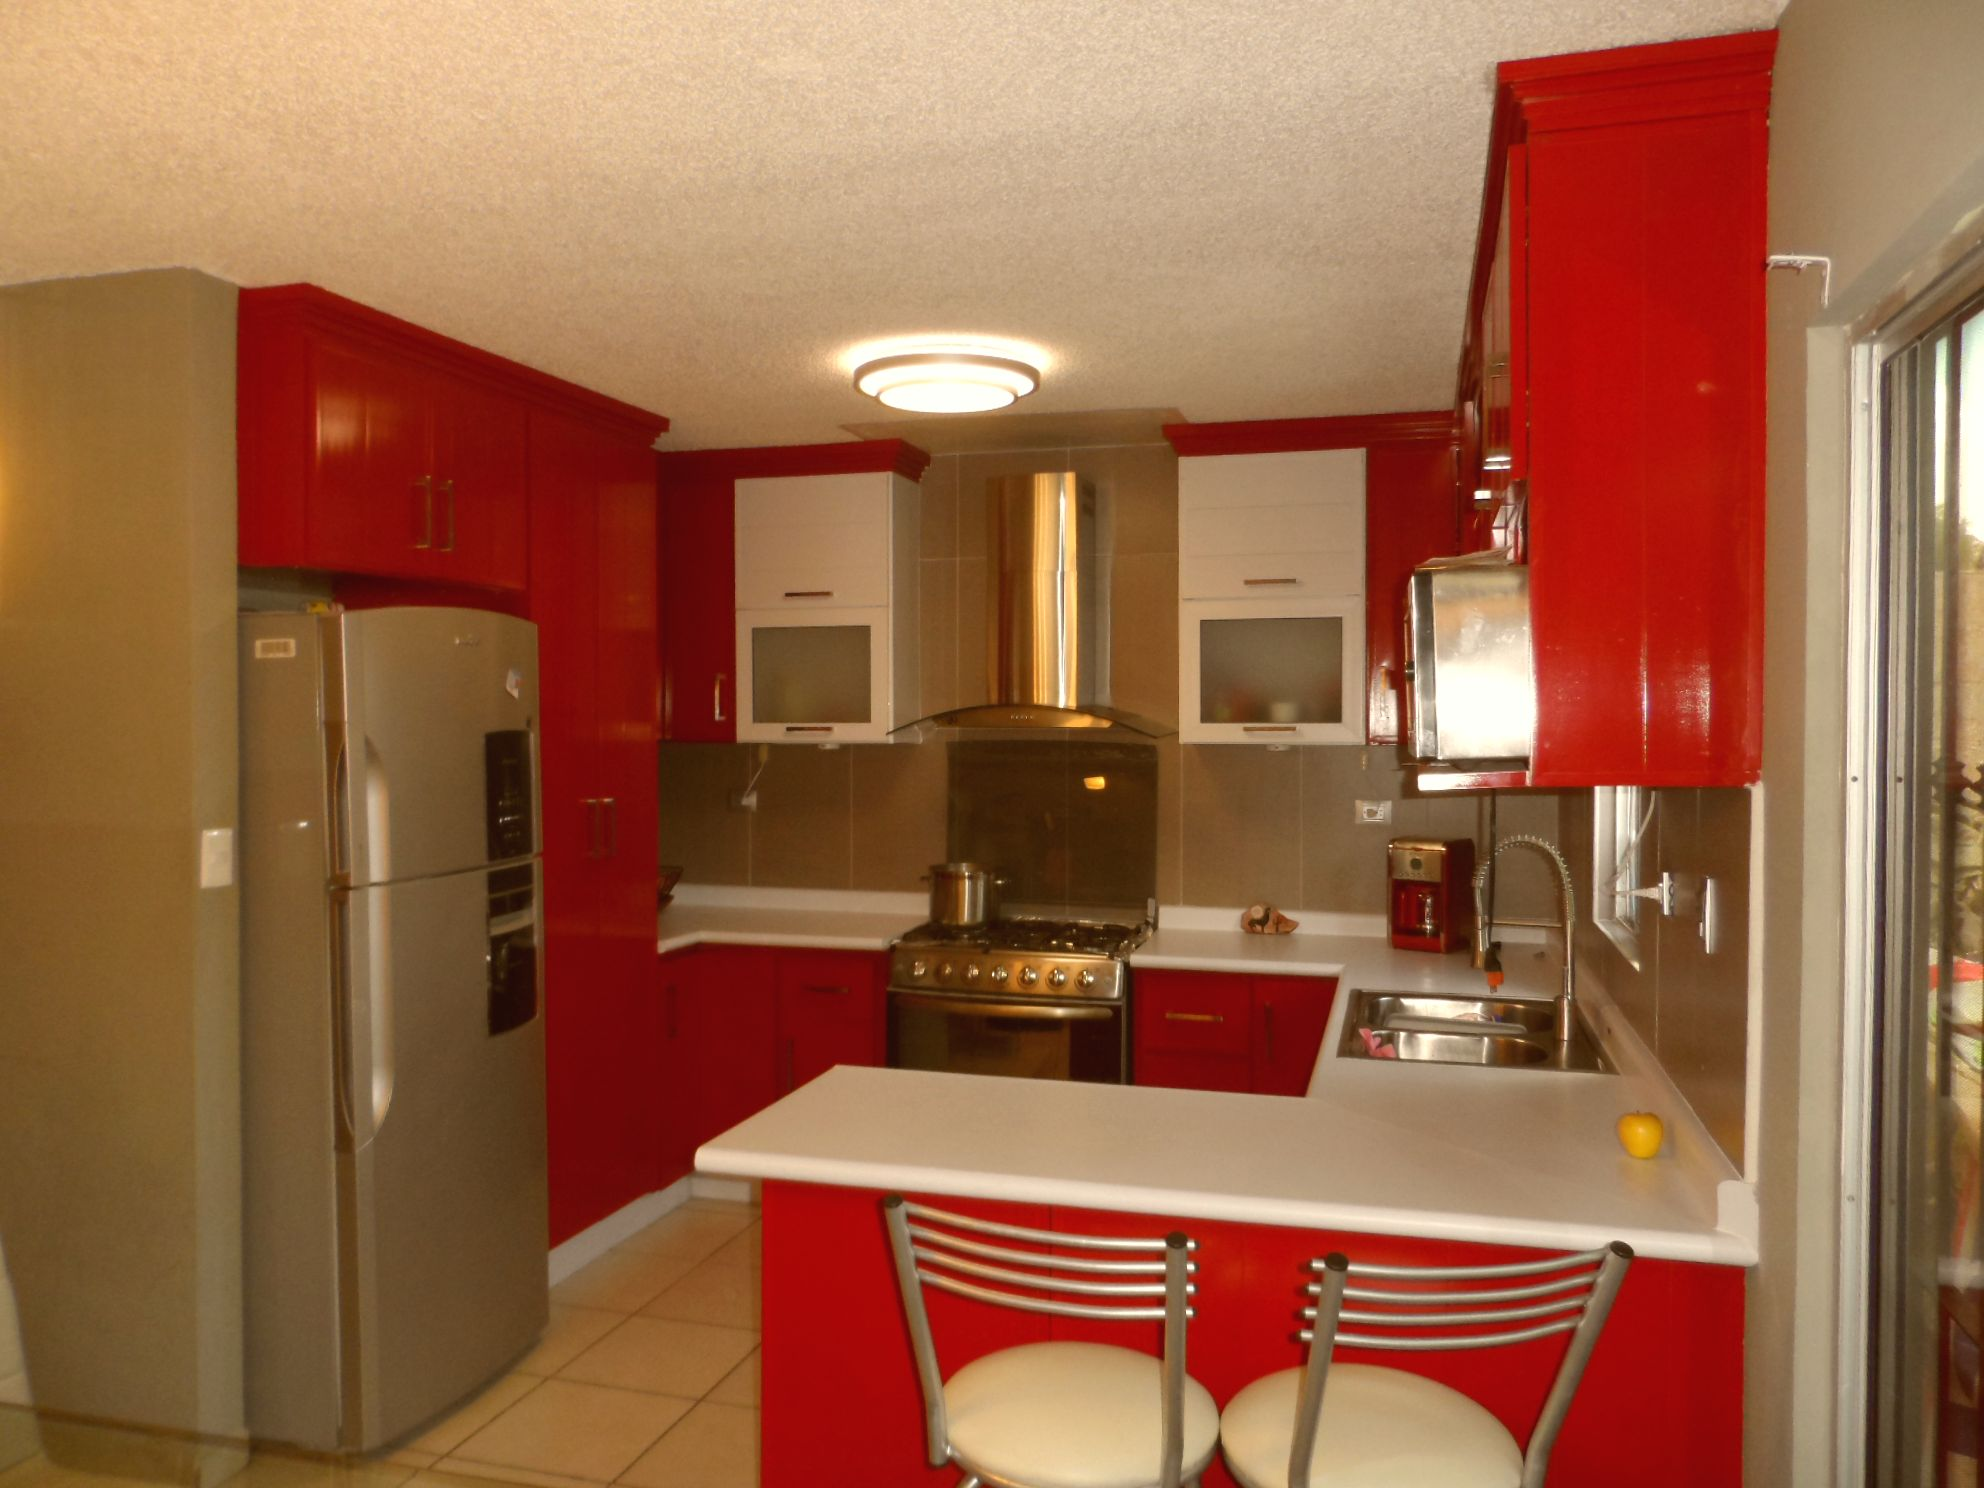 Red Rigid Plastic Kitchen Cabinets. Kitchen Cabinet Door Refacing Ideas. Kitchen Contractors Long Island. Renovating Kitchen Ideas. Kitchen Table Small Space. Kitchen Island Lanterns. Kitchen Island Alternatives. Small Kitchen Island Designs With Seating. Small Kitchen Rack